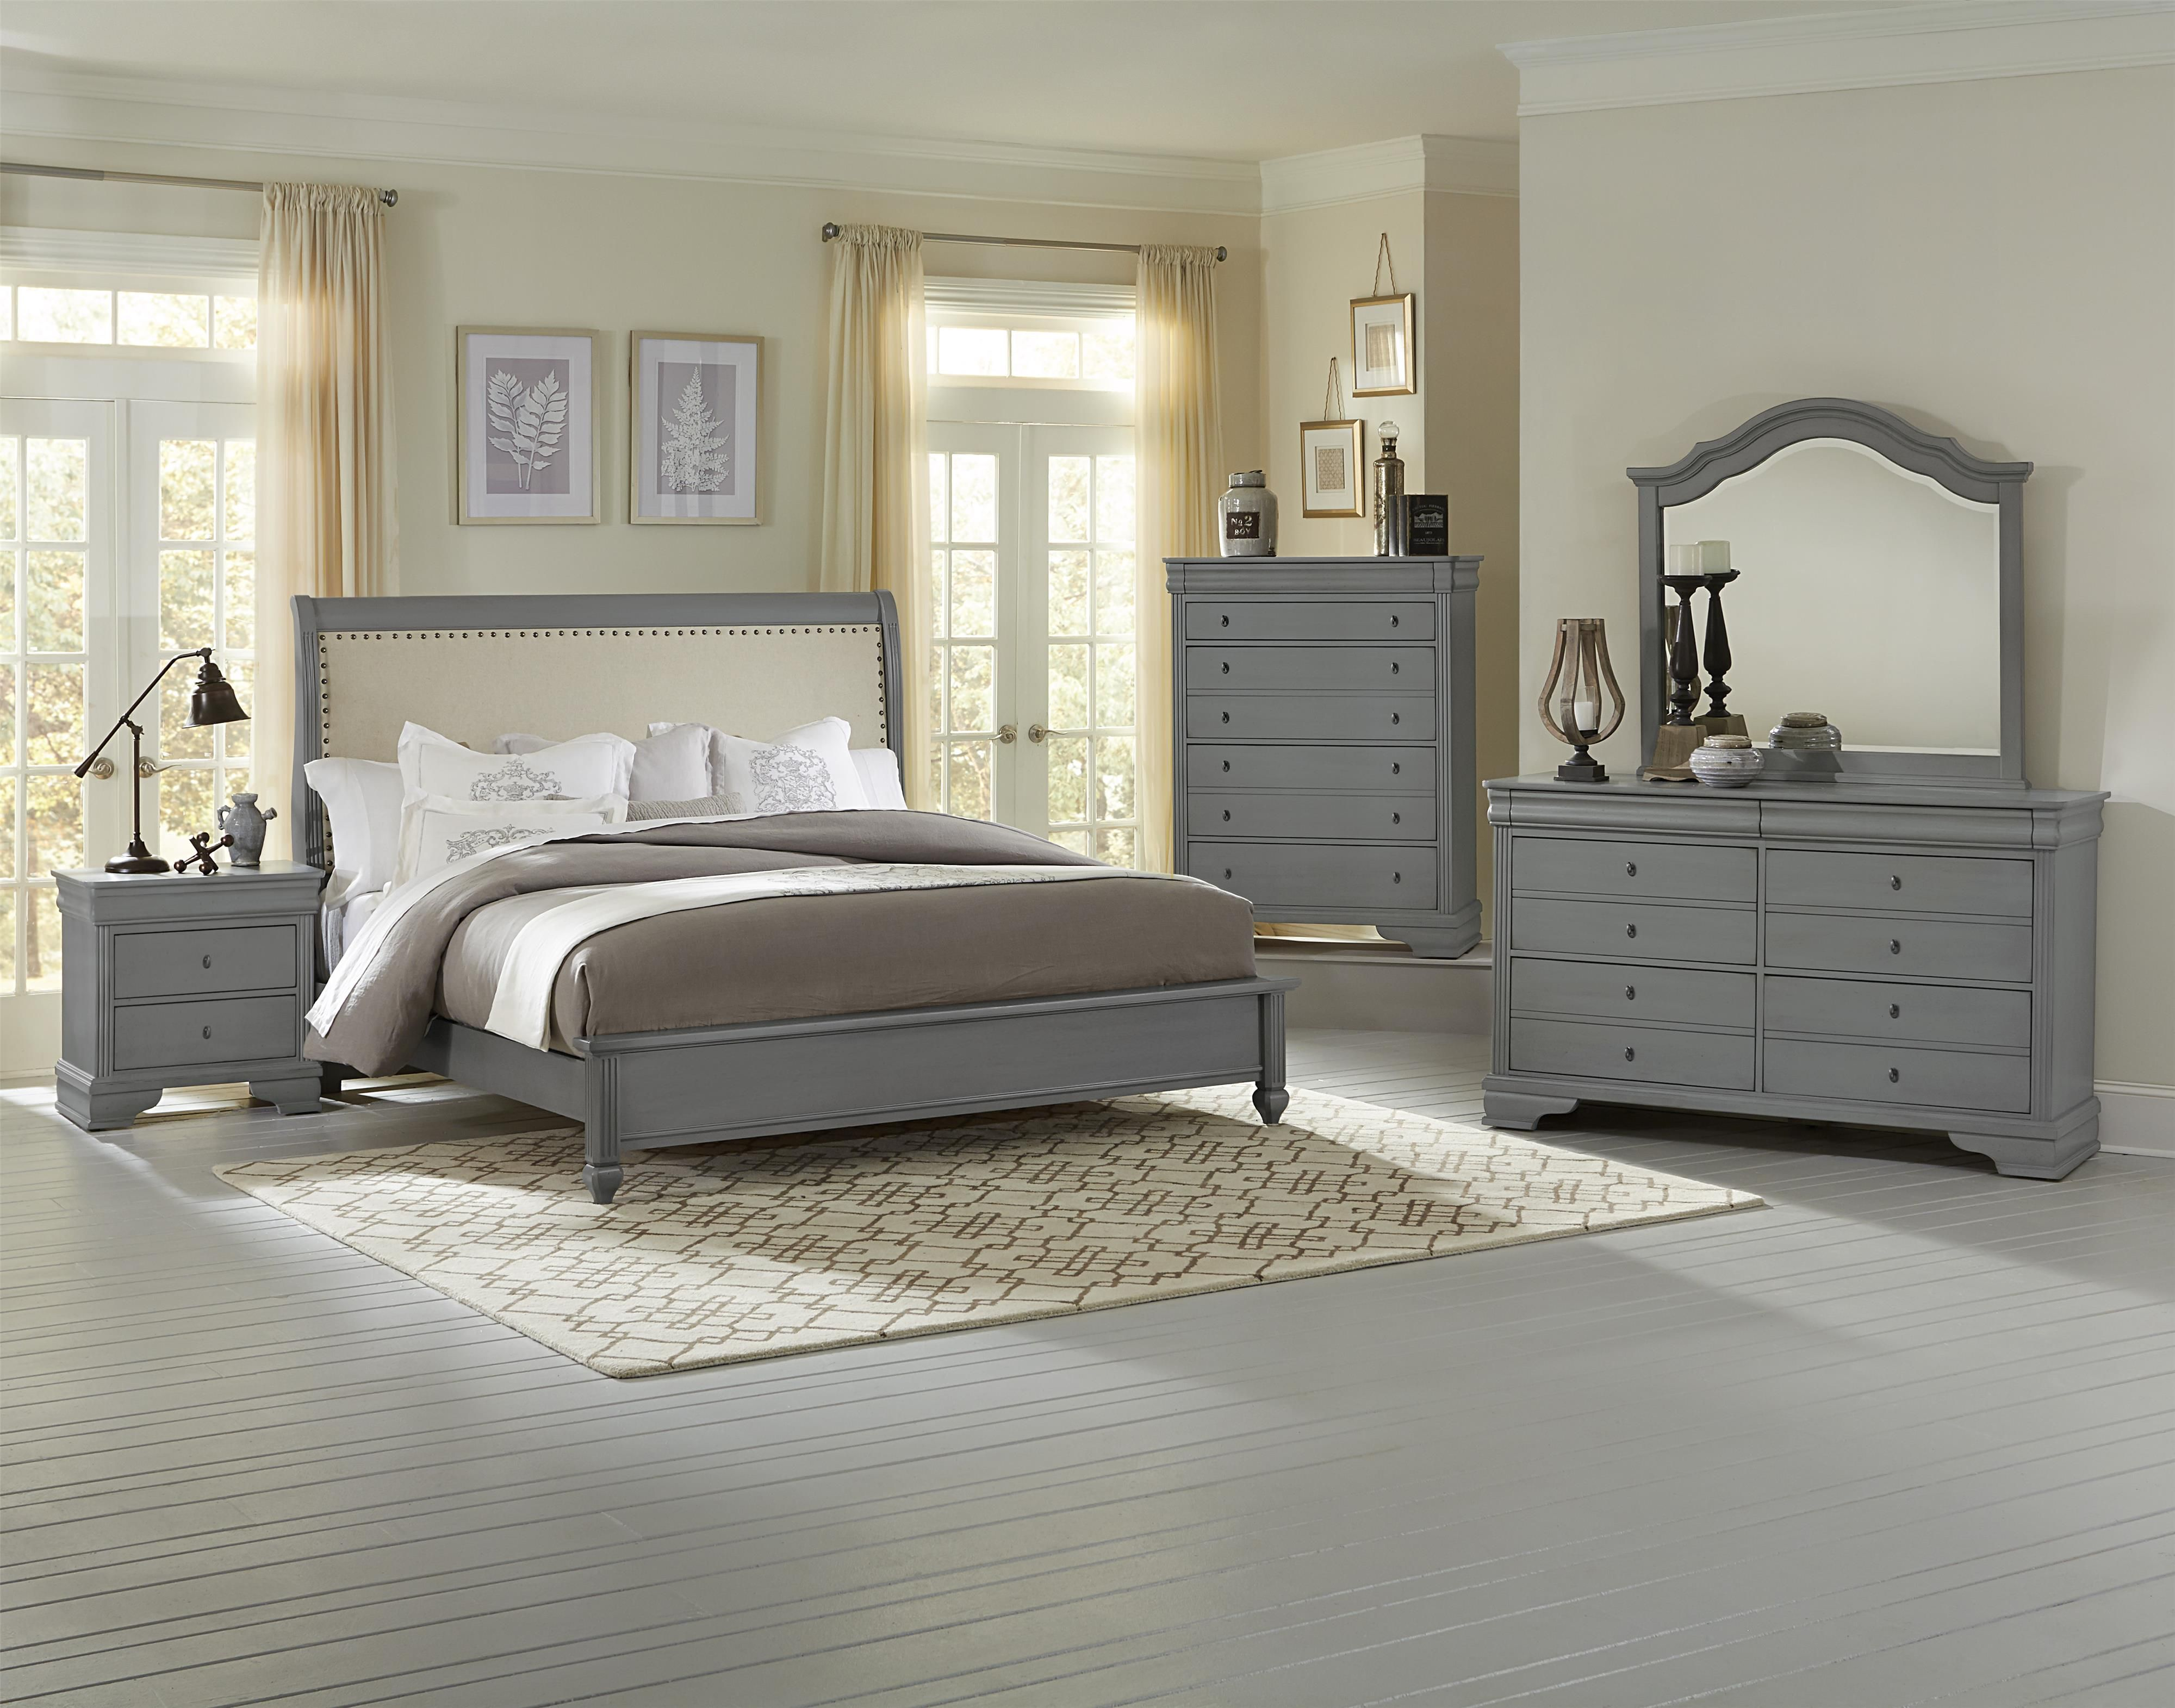 Remarkable French Market Queen Bedroom Group By Vaughan Bassett Interior Design Ideas Tzicisoteloinfo